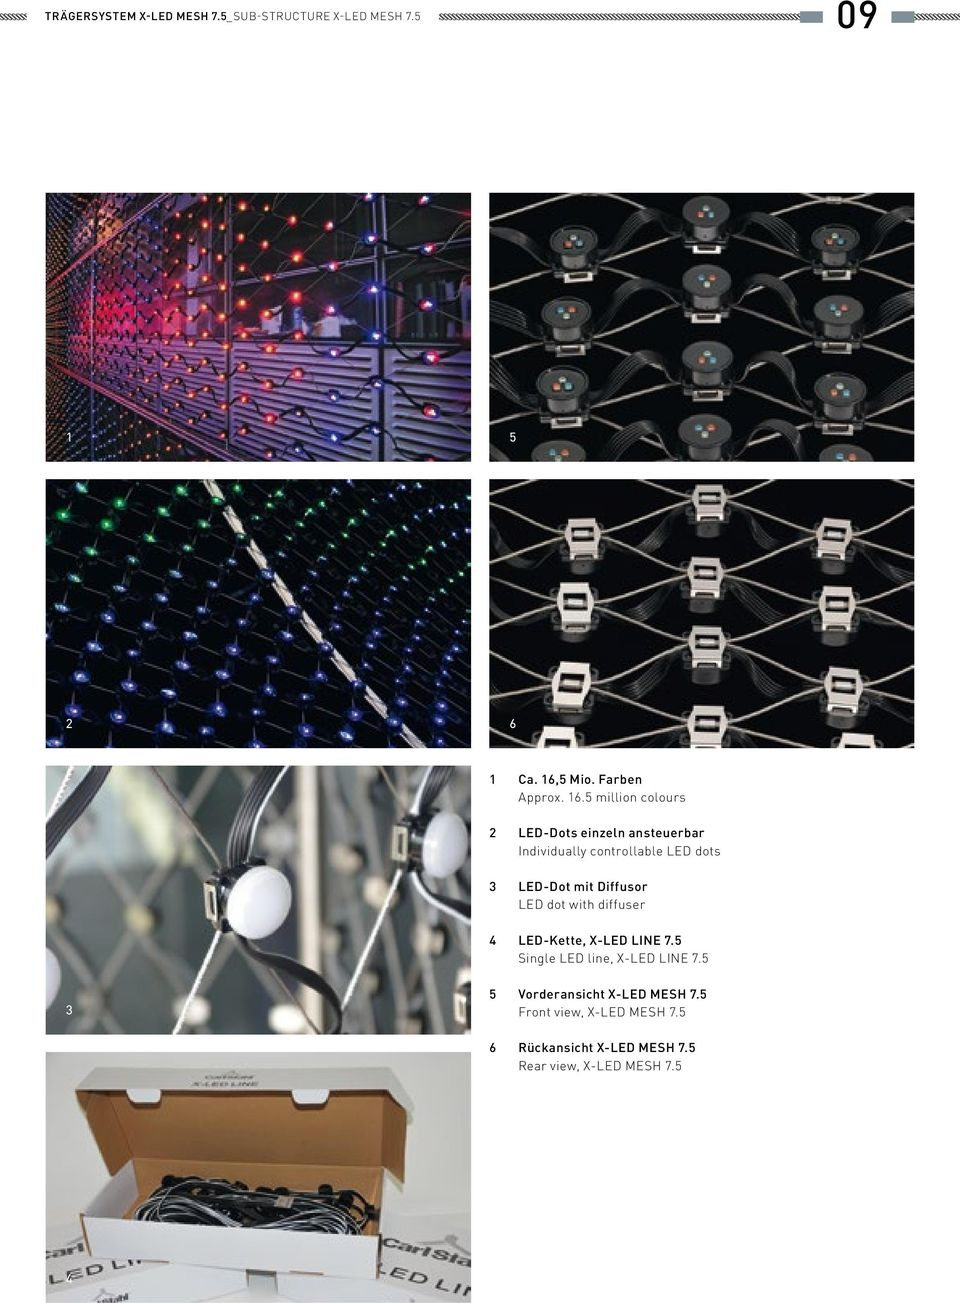 5 million colours 2 LED-Dots einzeln ansteuerbar Individually controllable LED dots 3 LED-Dot mit